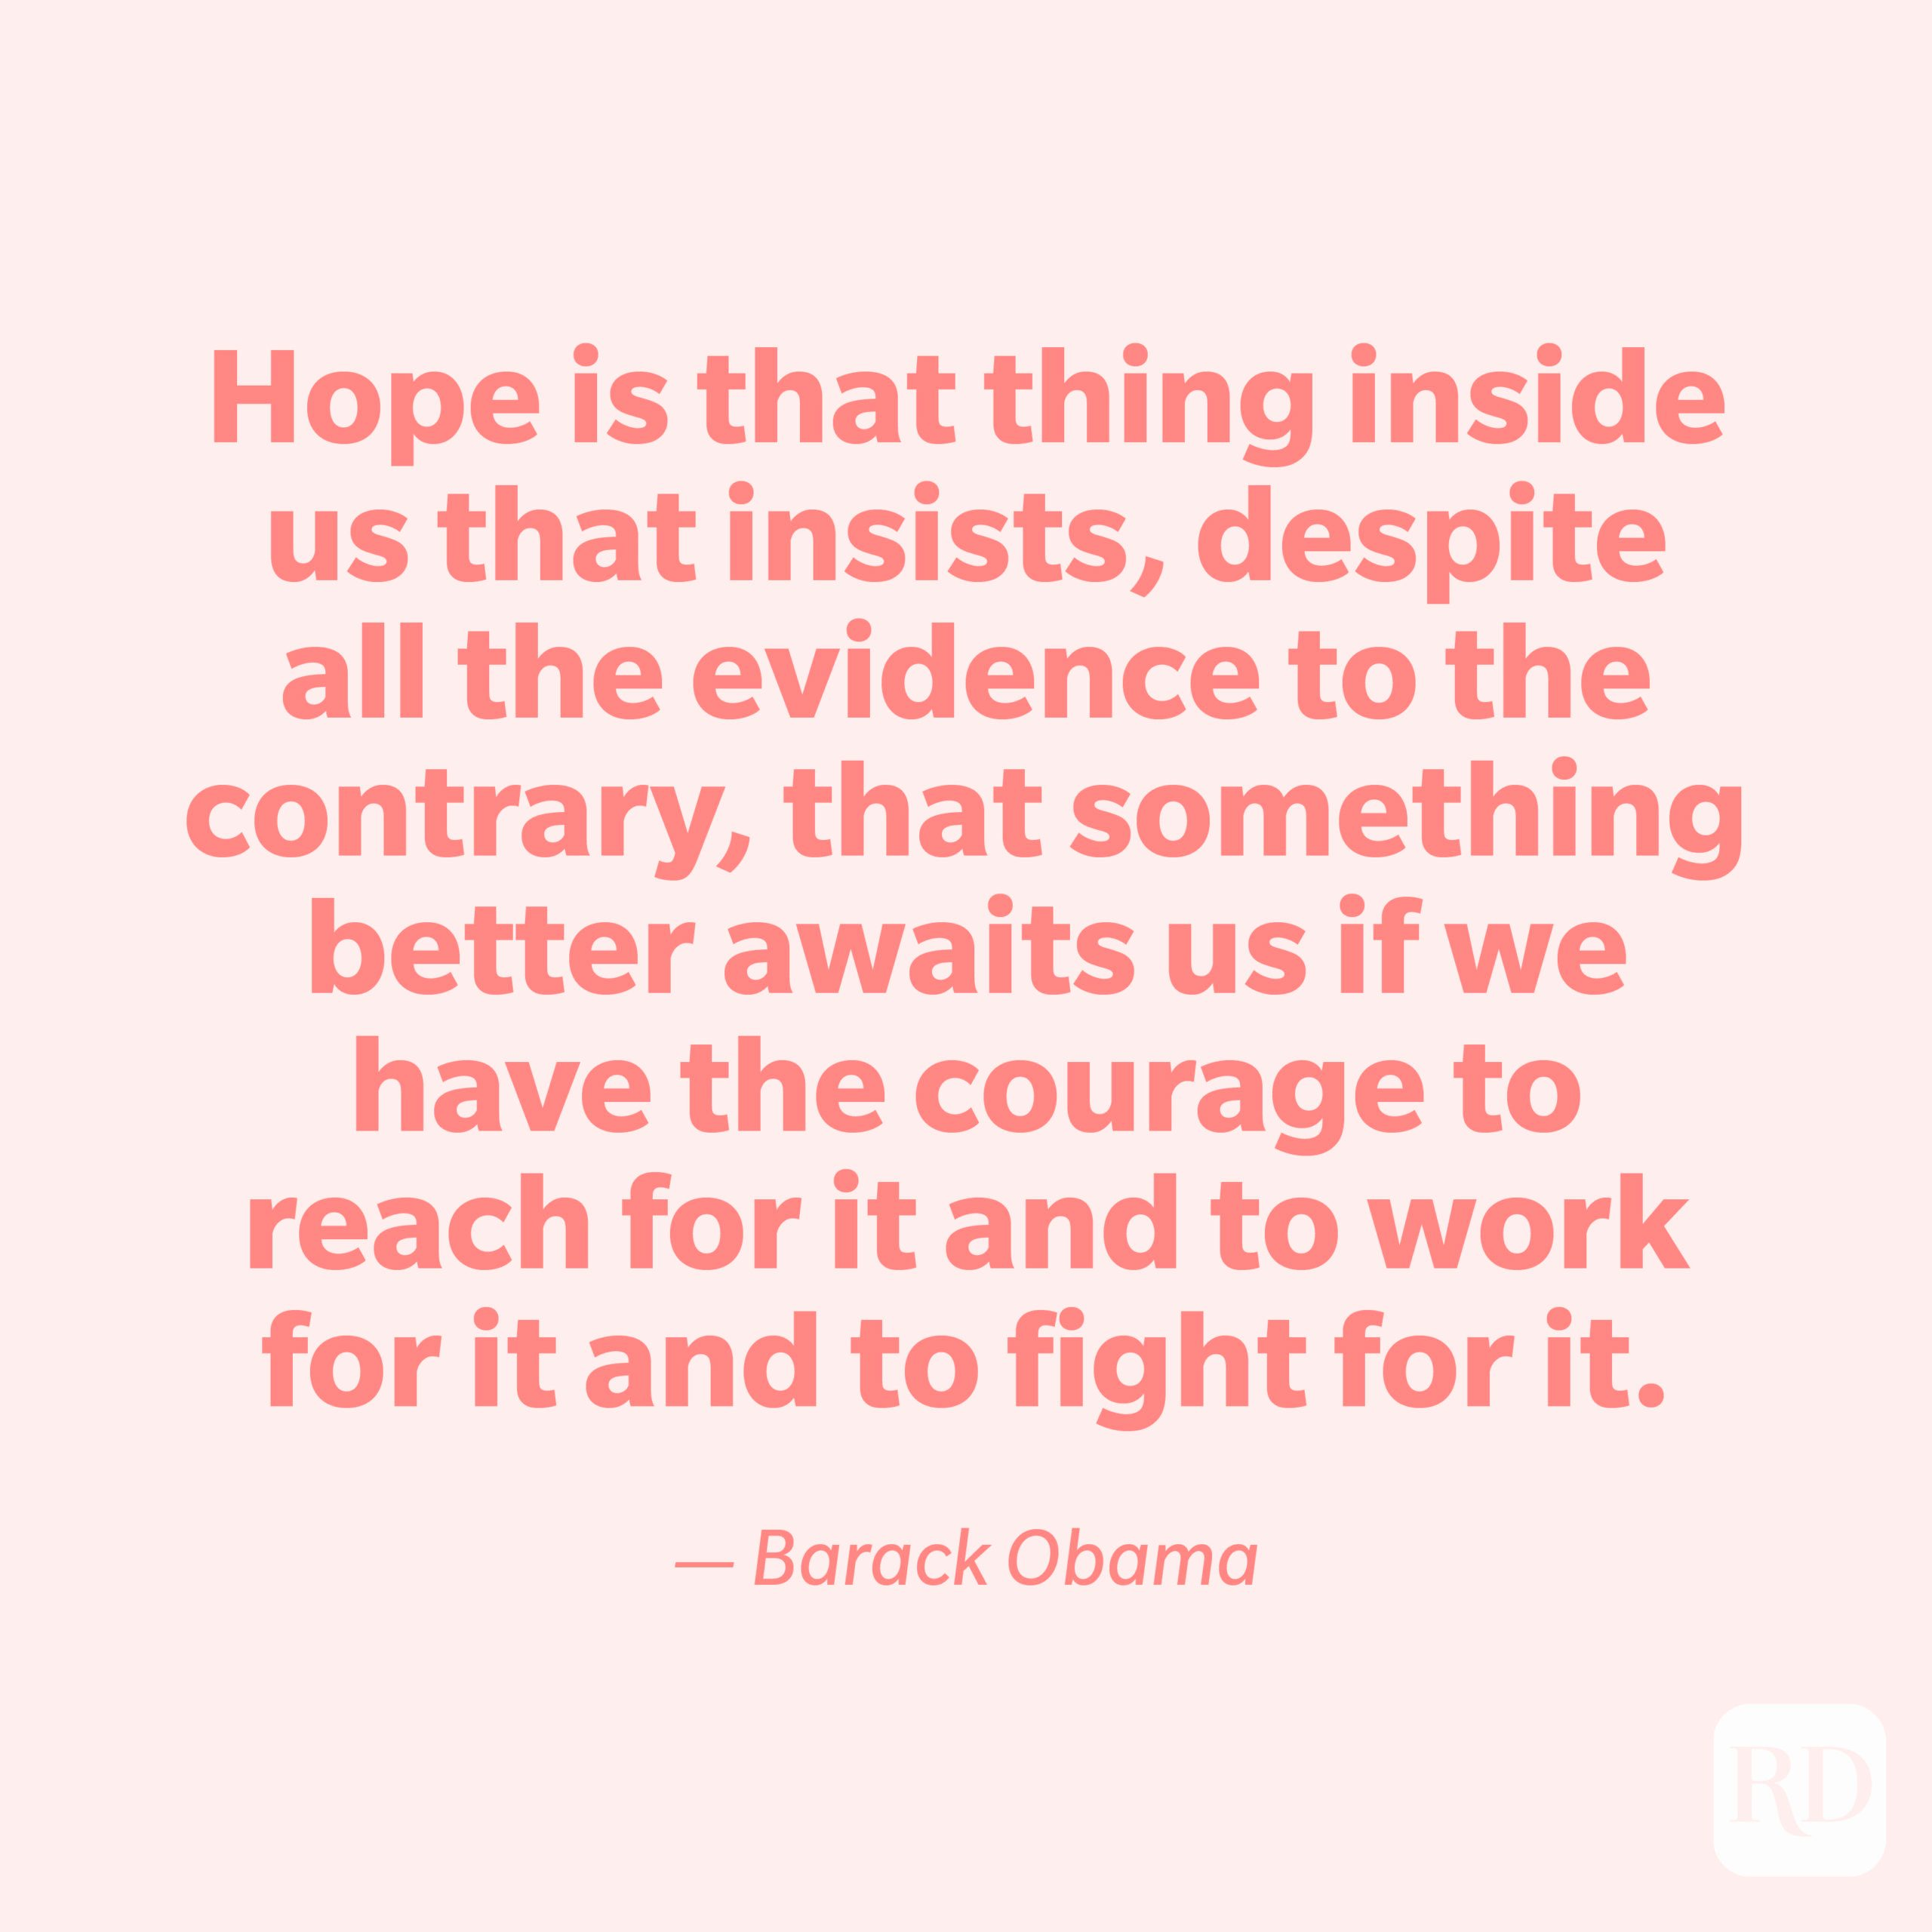 """""""Hope is that thing inside us that insists, despite all the evidence to the contrary, that something better awaits us if we have the courage to reach for it and to work for it and to fight for it."""" —Barack Obama."""